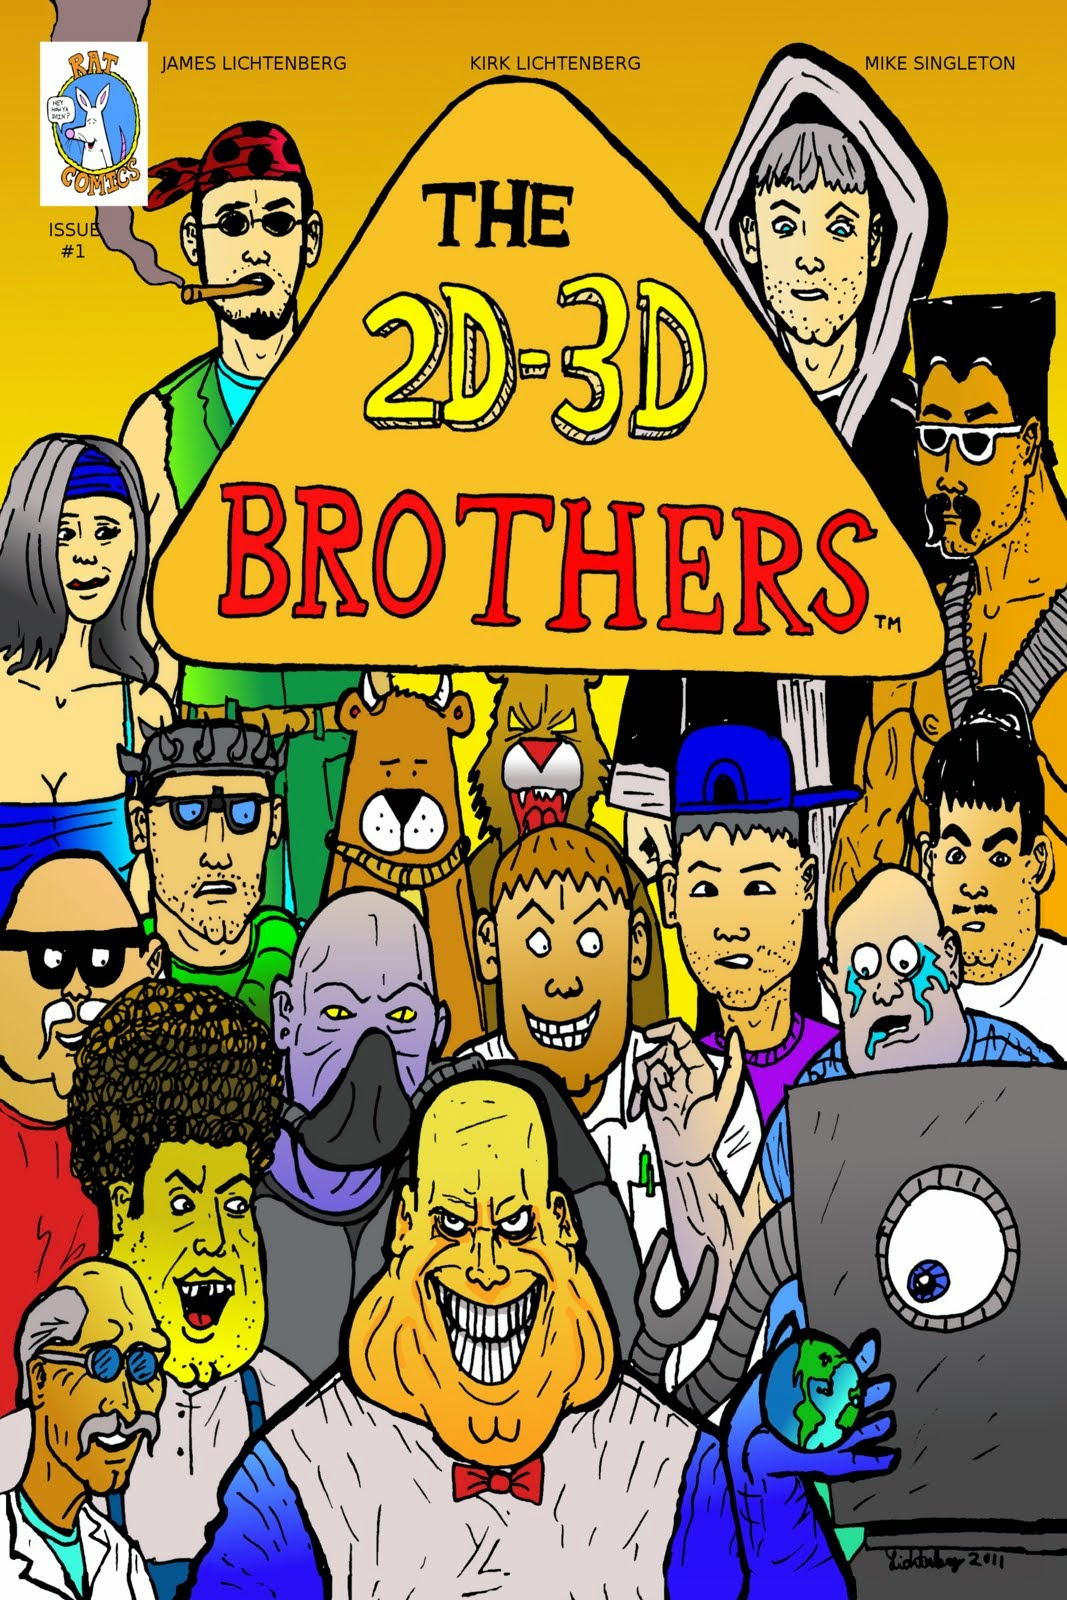 2d-3d Brothers